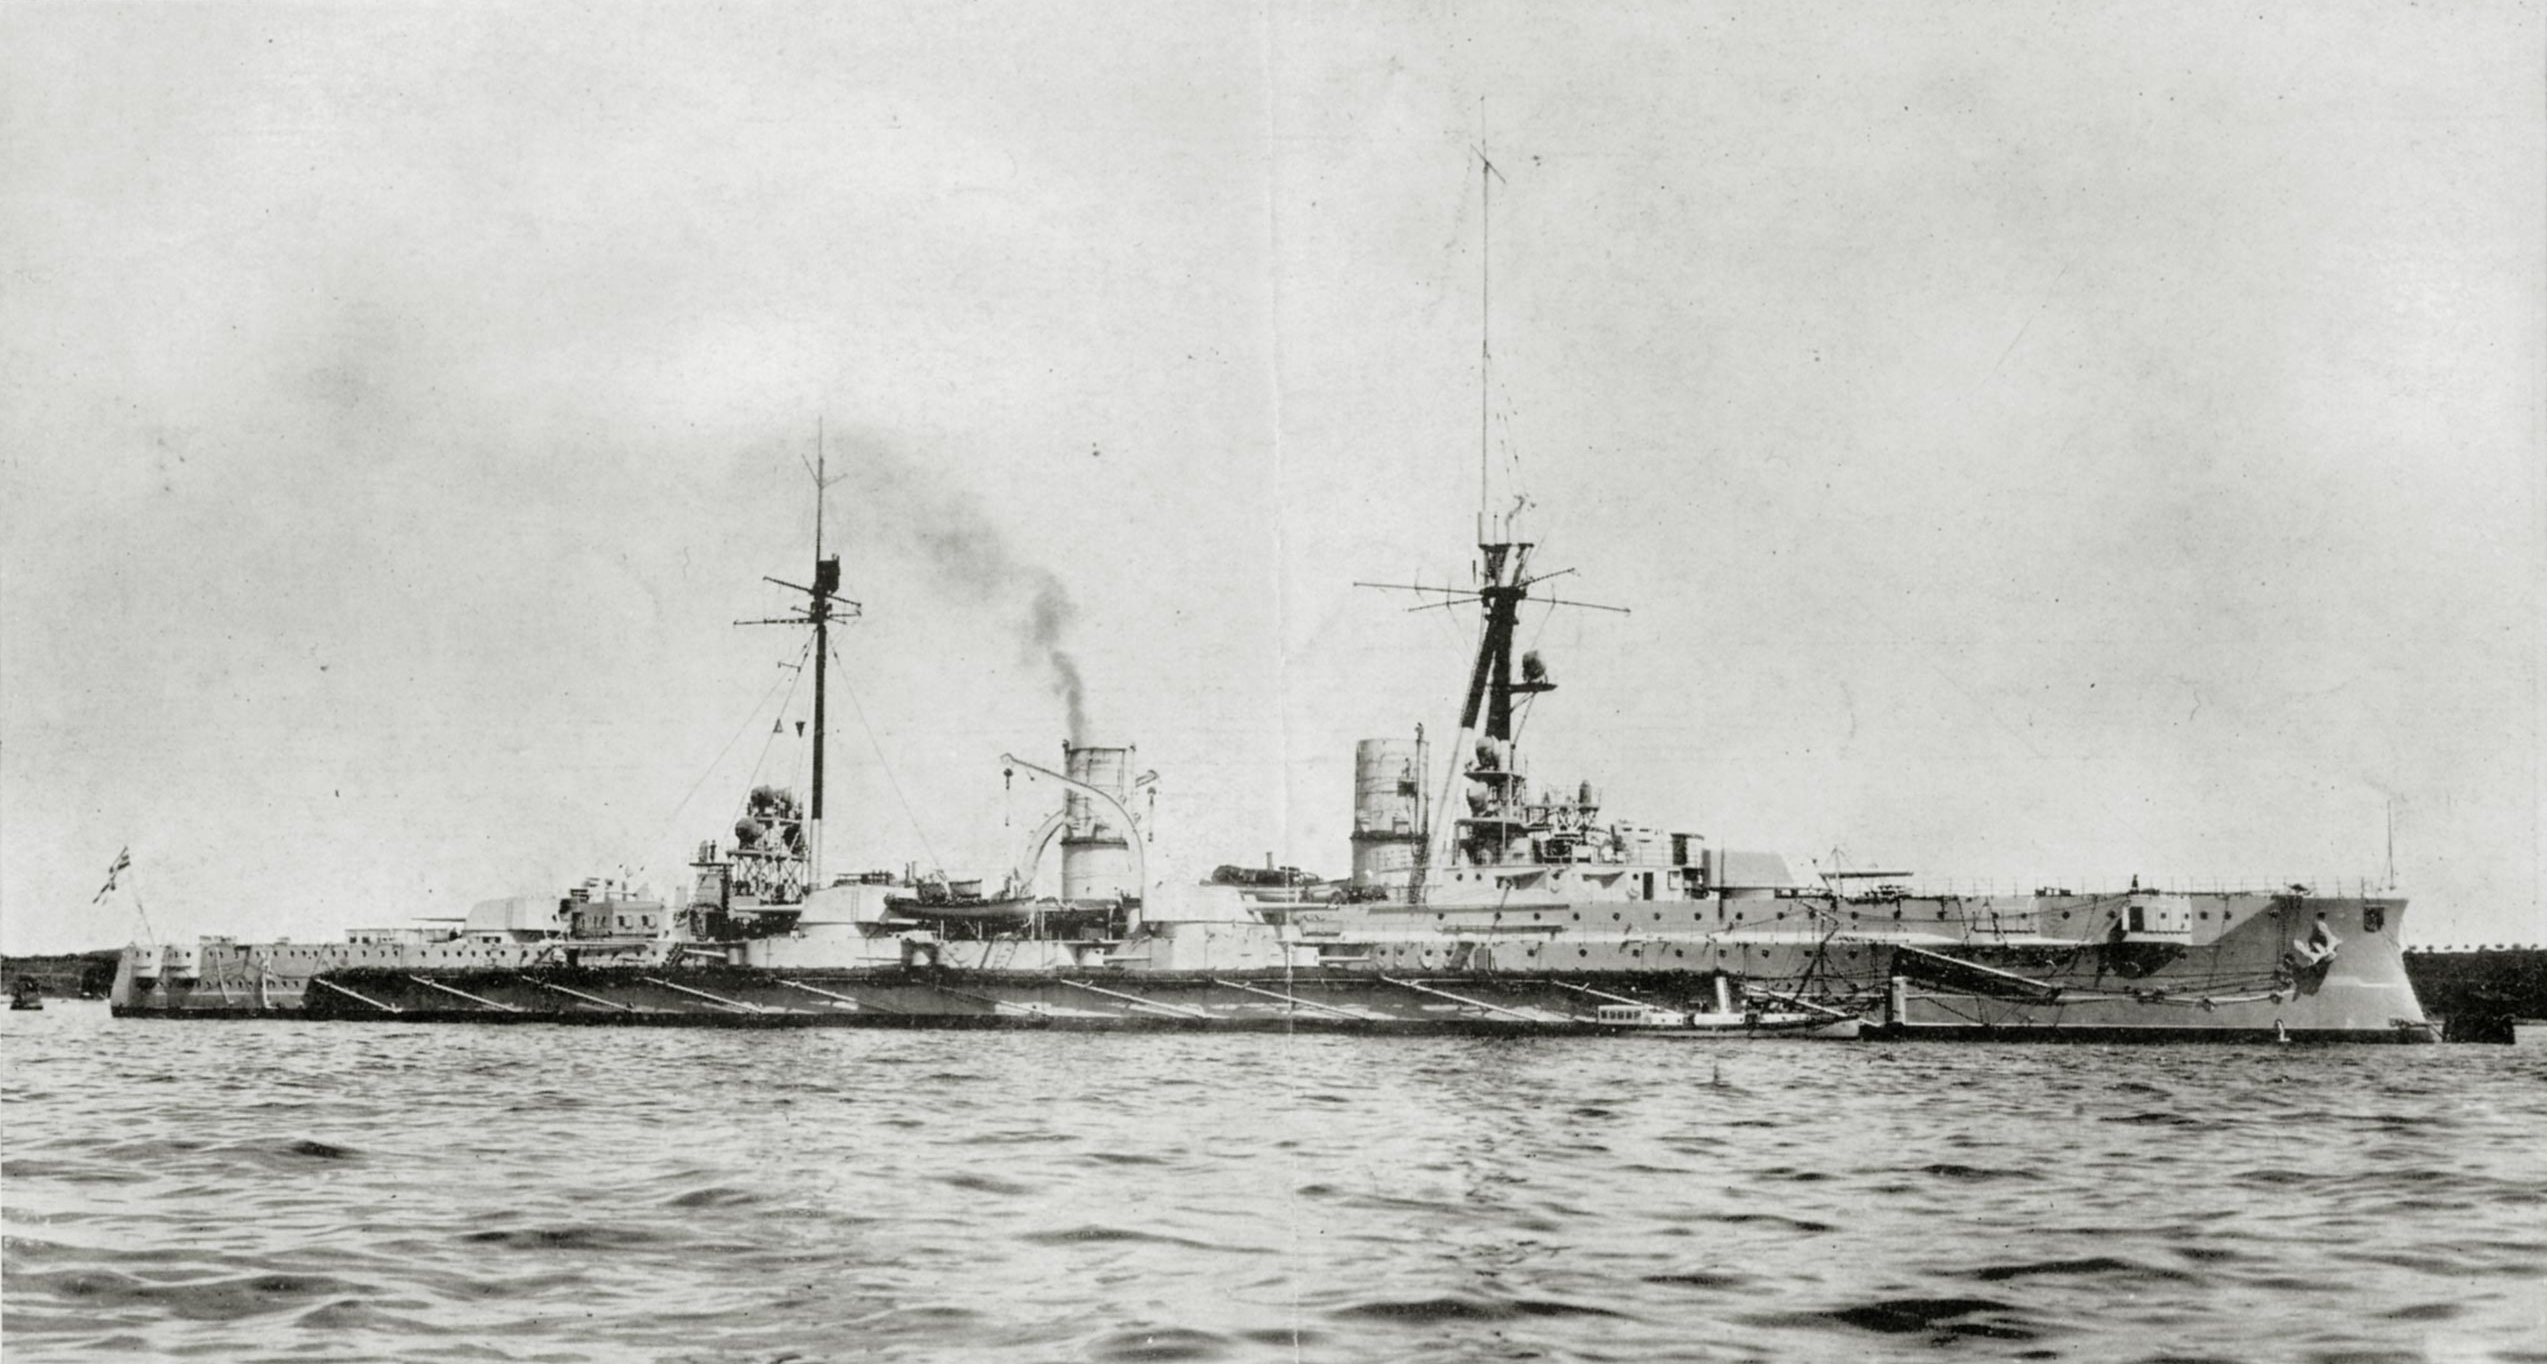 German Cruisers of World War Two in action Squadron/Signal #24